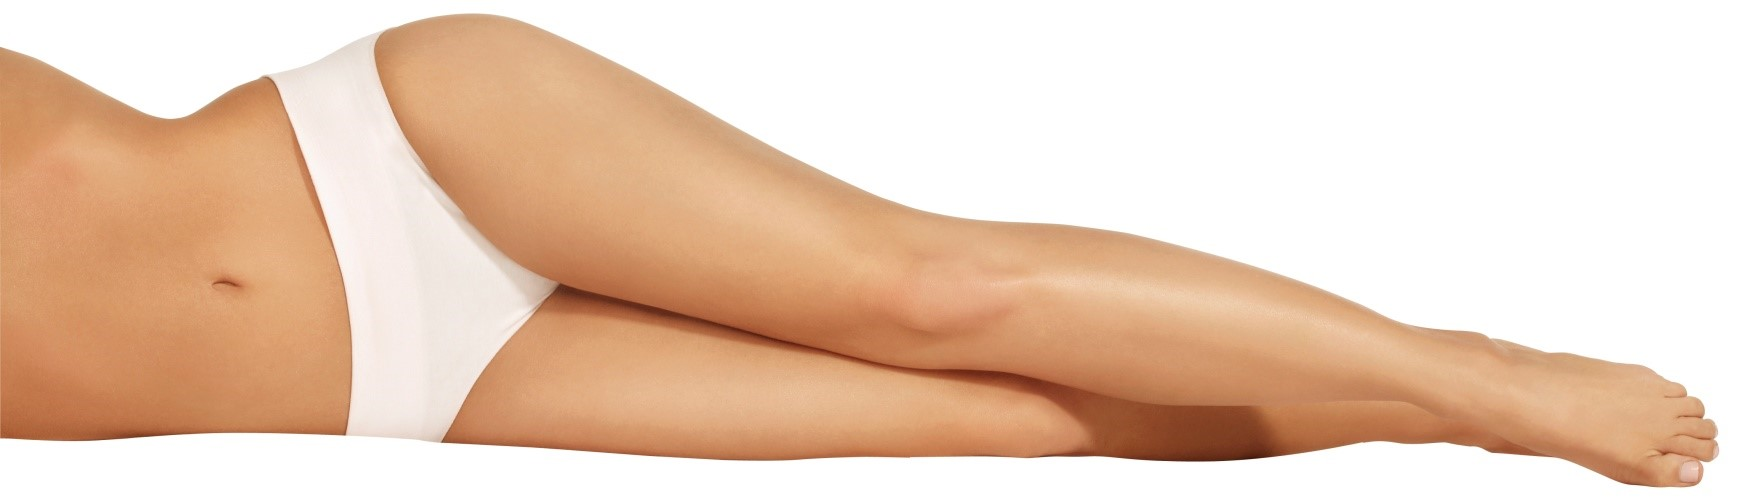 Laser Hair Removal Toronto Treatments